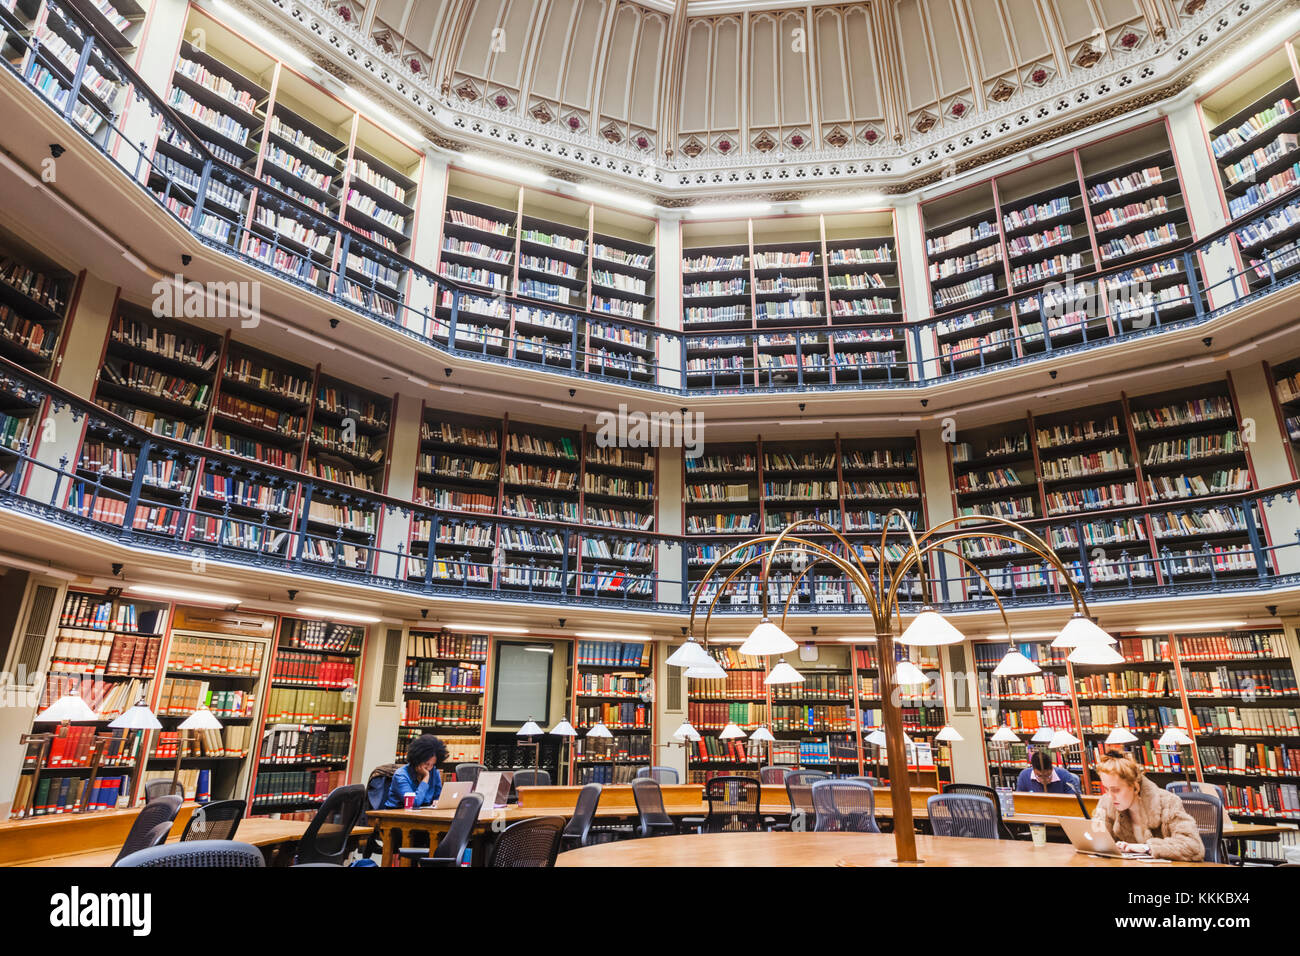 Maughan Library Reading Room